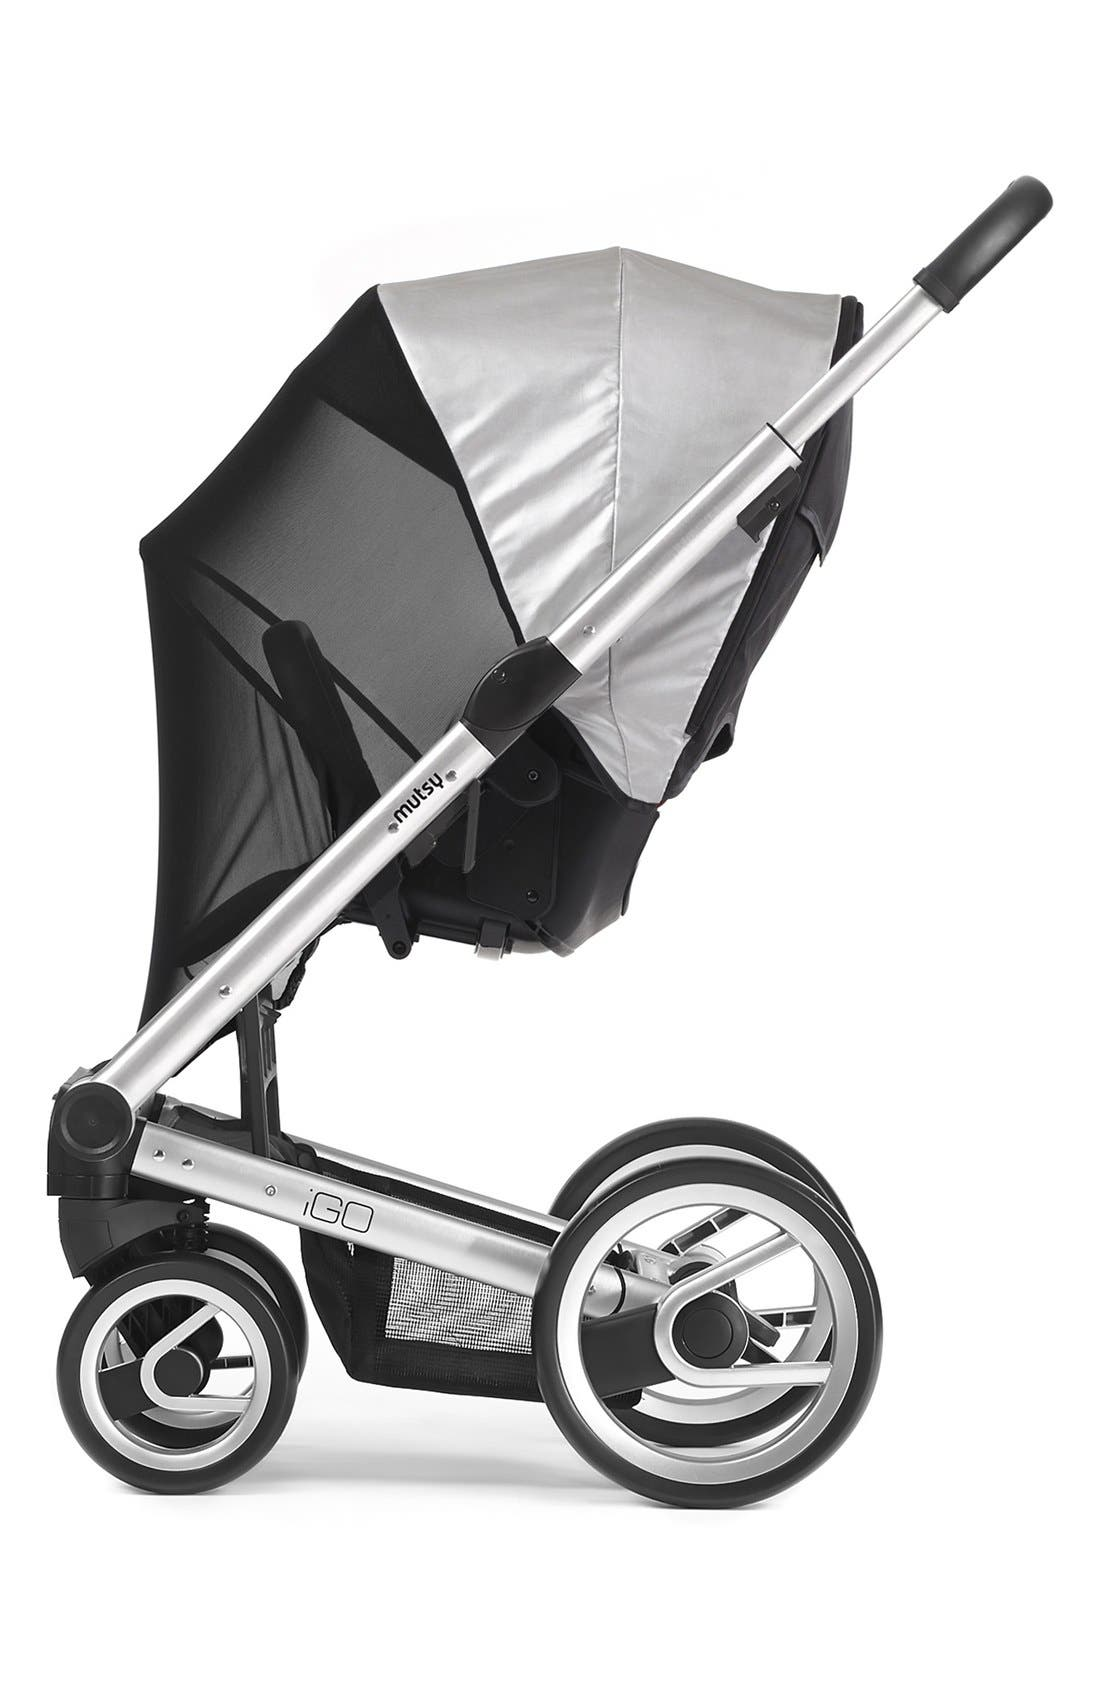 Alternate Image 1 Selected - Mutsy 'Igo' Stroller Seat UV Cover